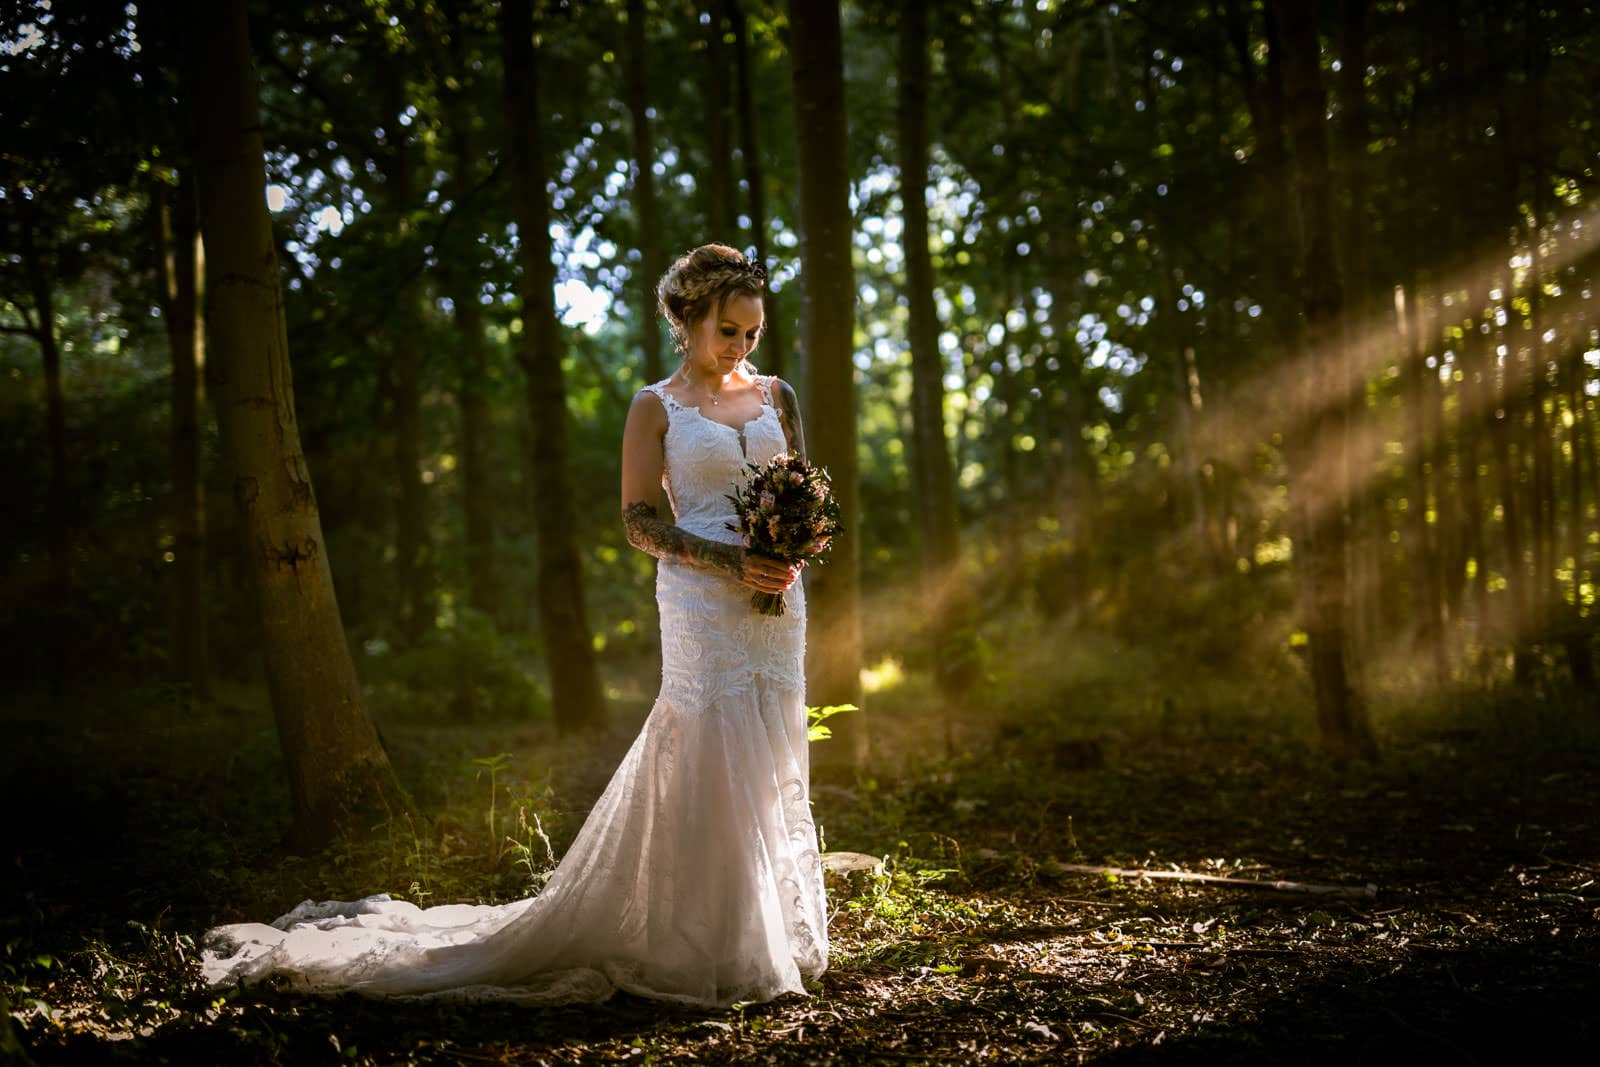 ethereal wedding photography of a bride in a forest